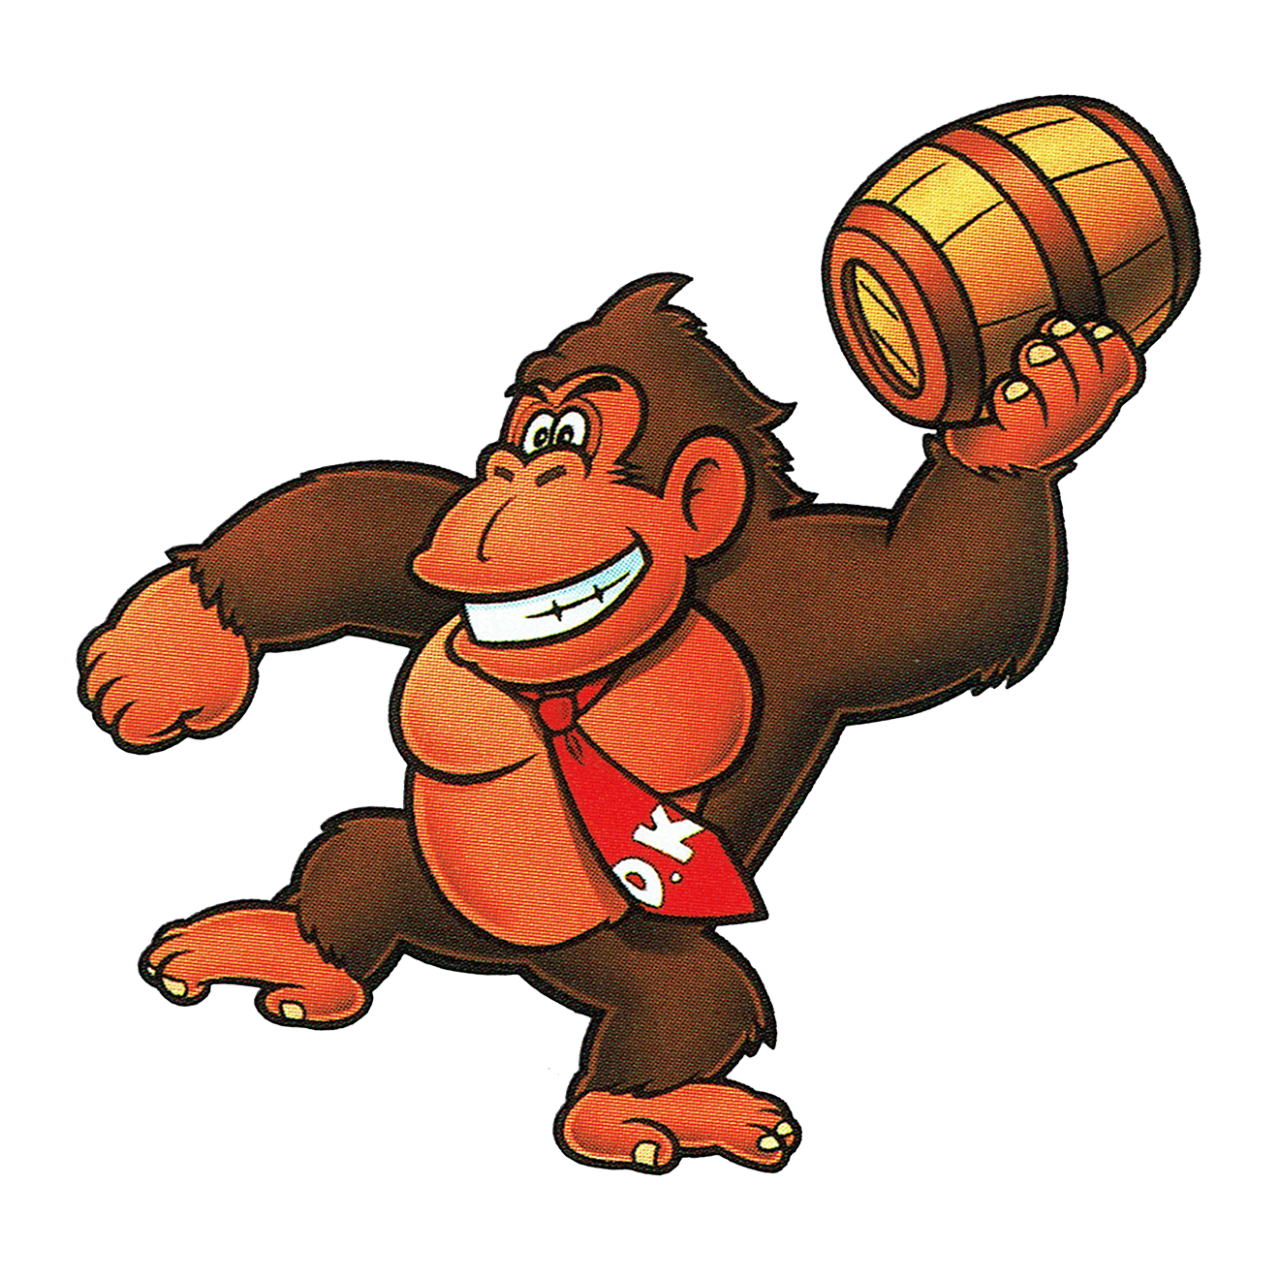 Thevideogameartarchive Donkey Kong 94 Is The First Game Where Dk Got His Tie Here He Is About To Throw Barrels The Video Game Art Archive Support Us On